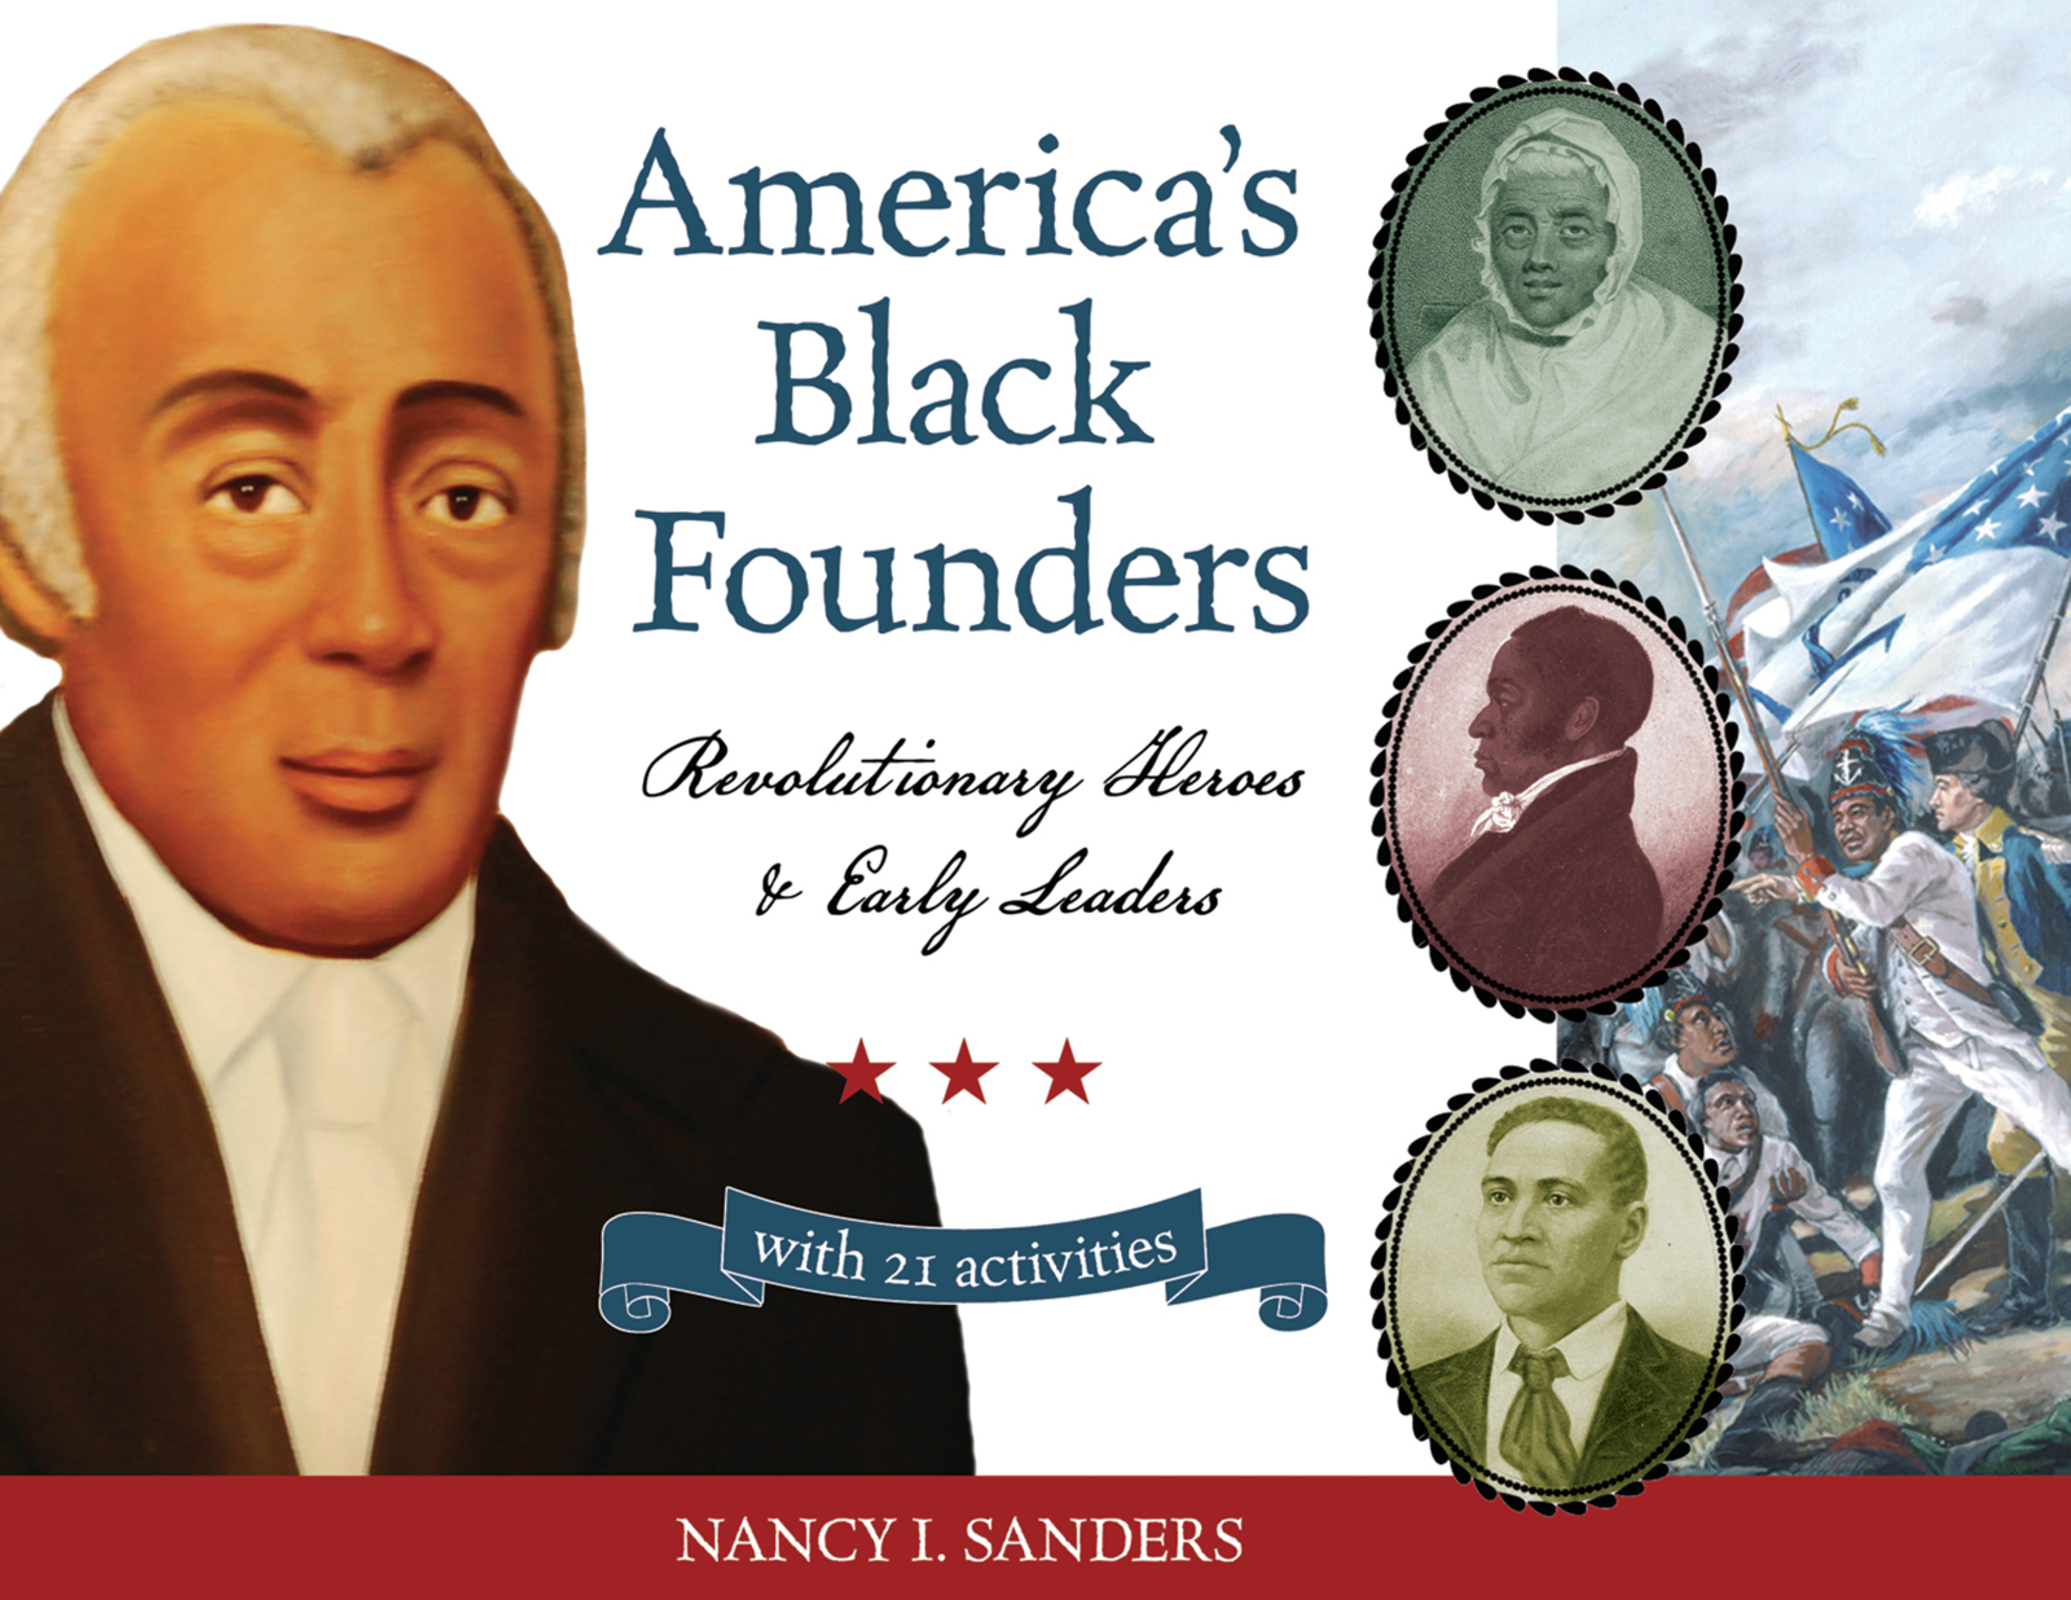 America's Black Founders Revolutionary Heroes & Early Leaders with 21 Activities